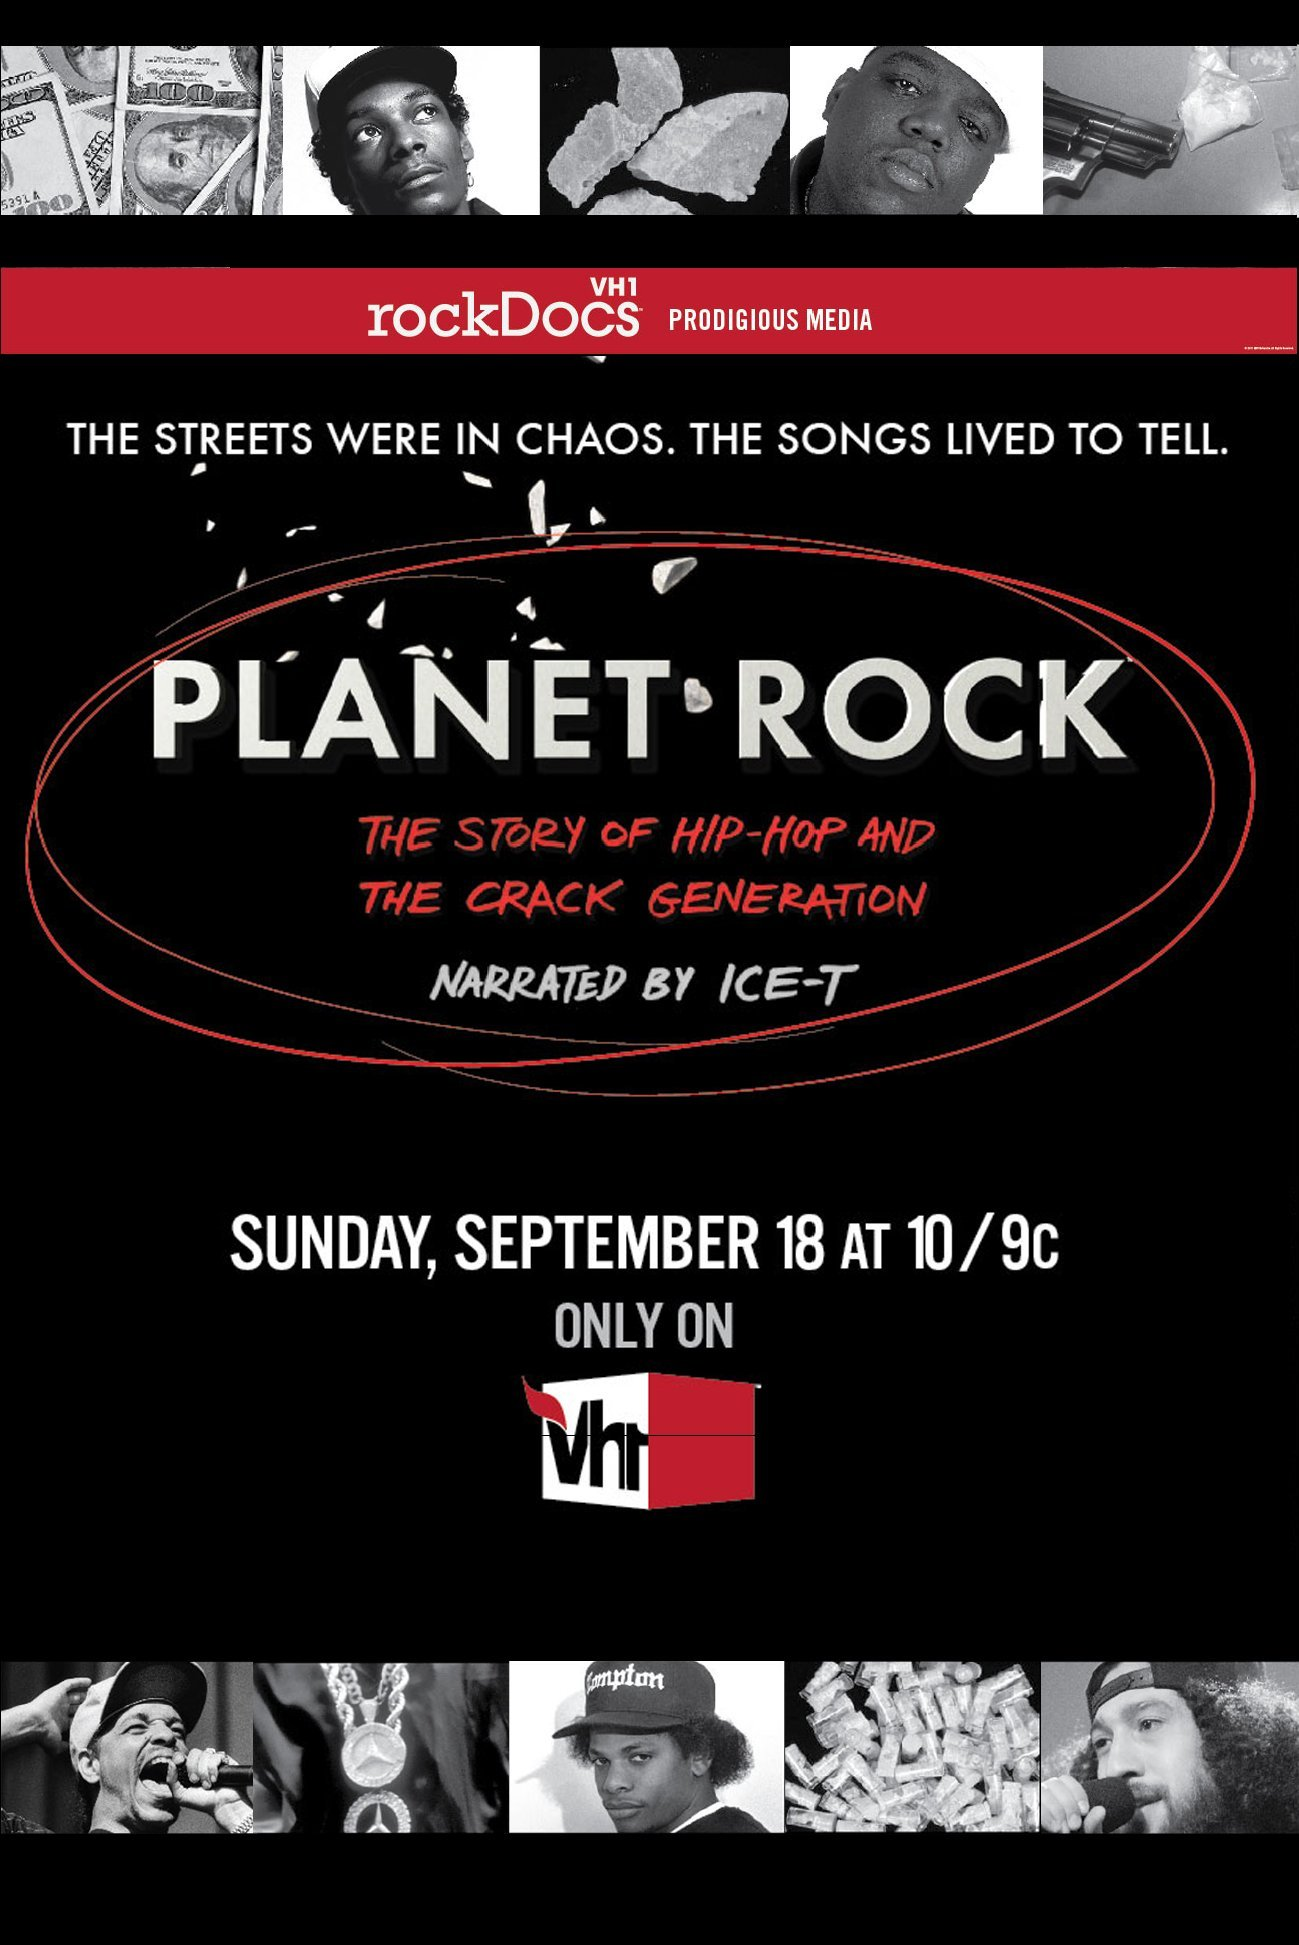 Planet Rock: The Story of Hip-Hop and the Crack Generation (TV Movie